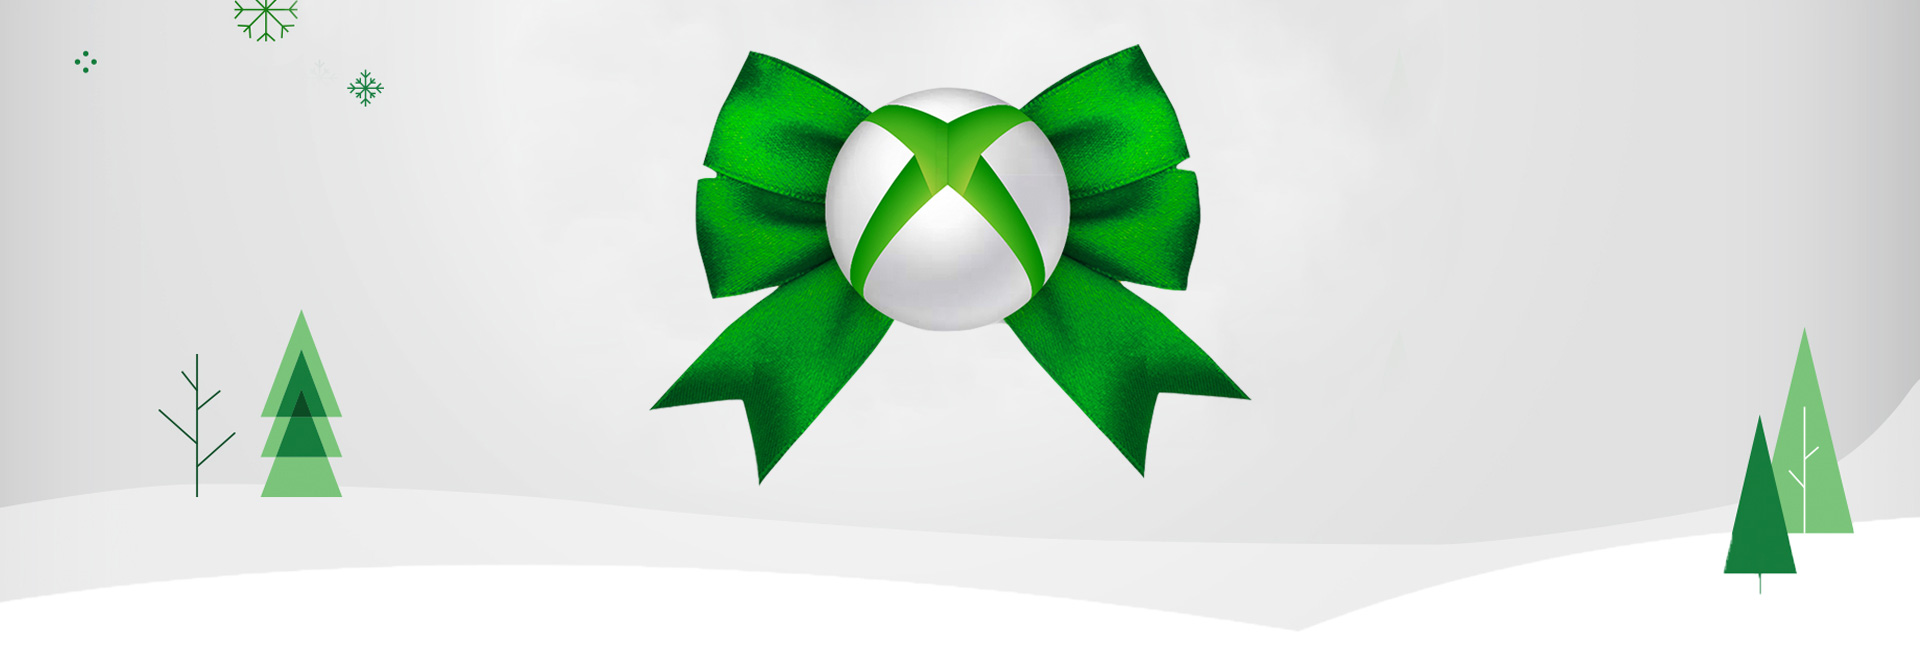 xbox.com - Give the joy of gaming to everyone